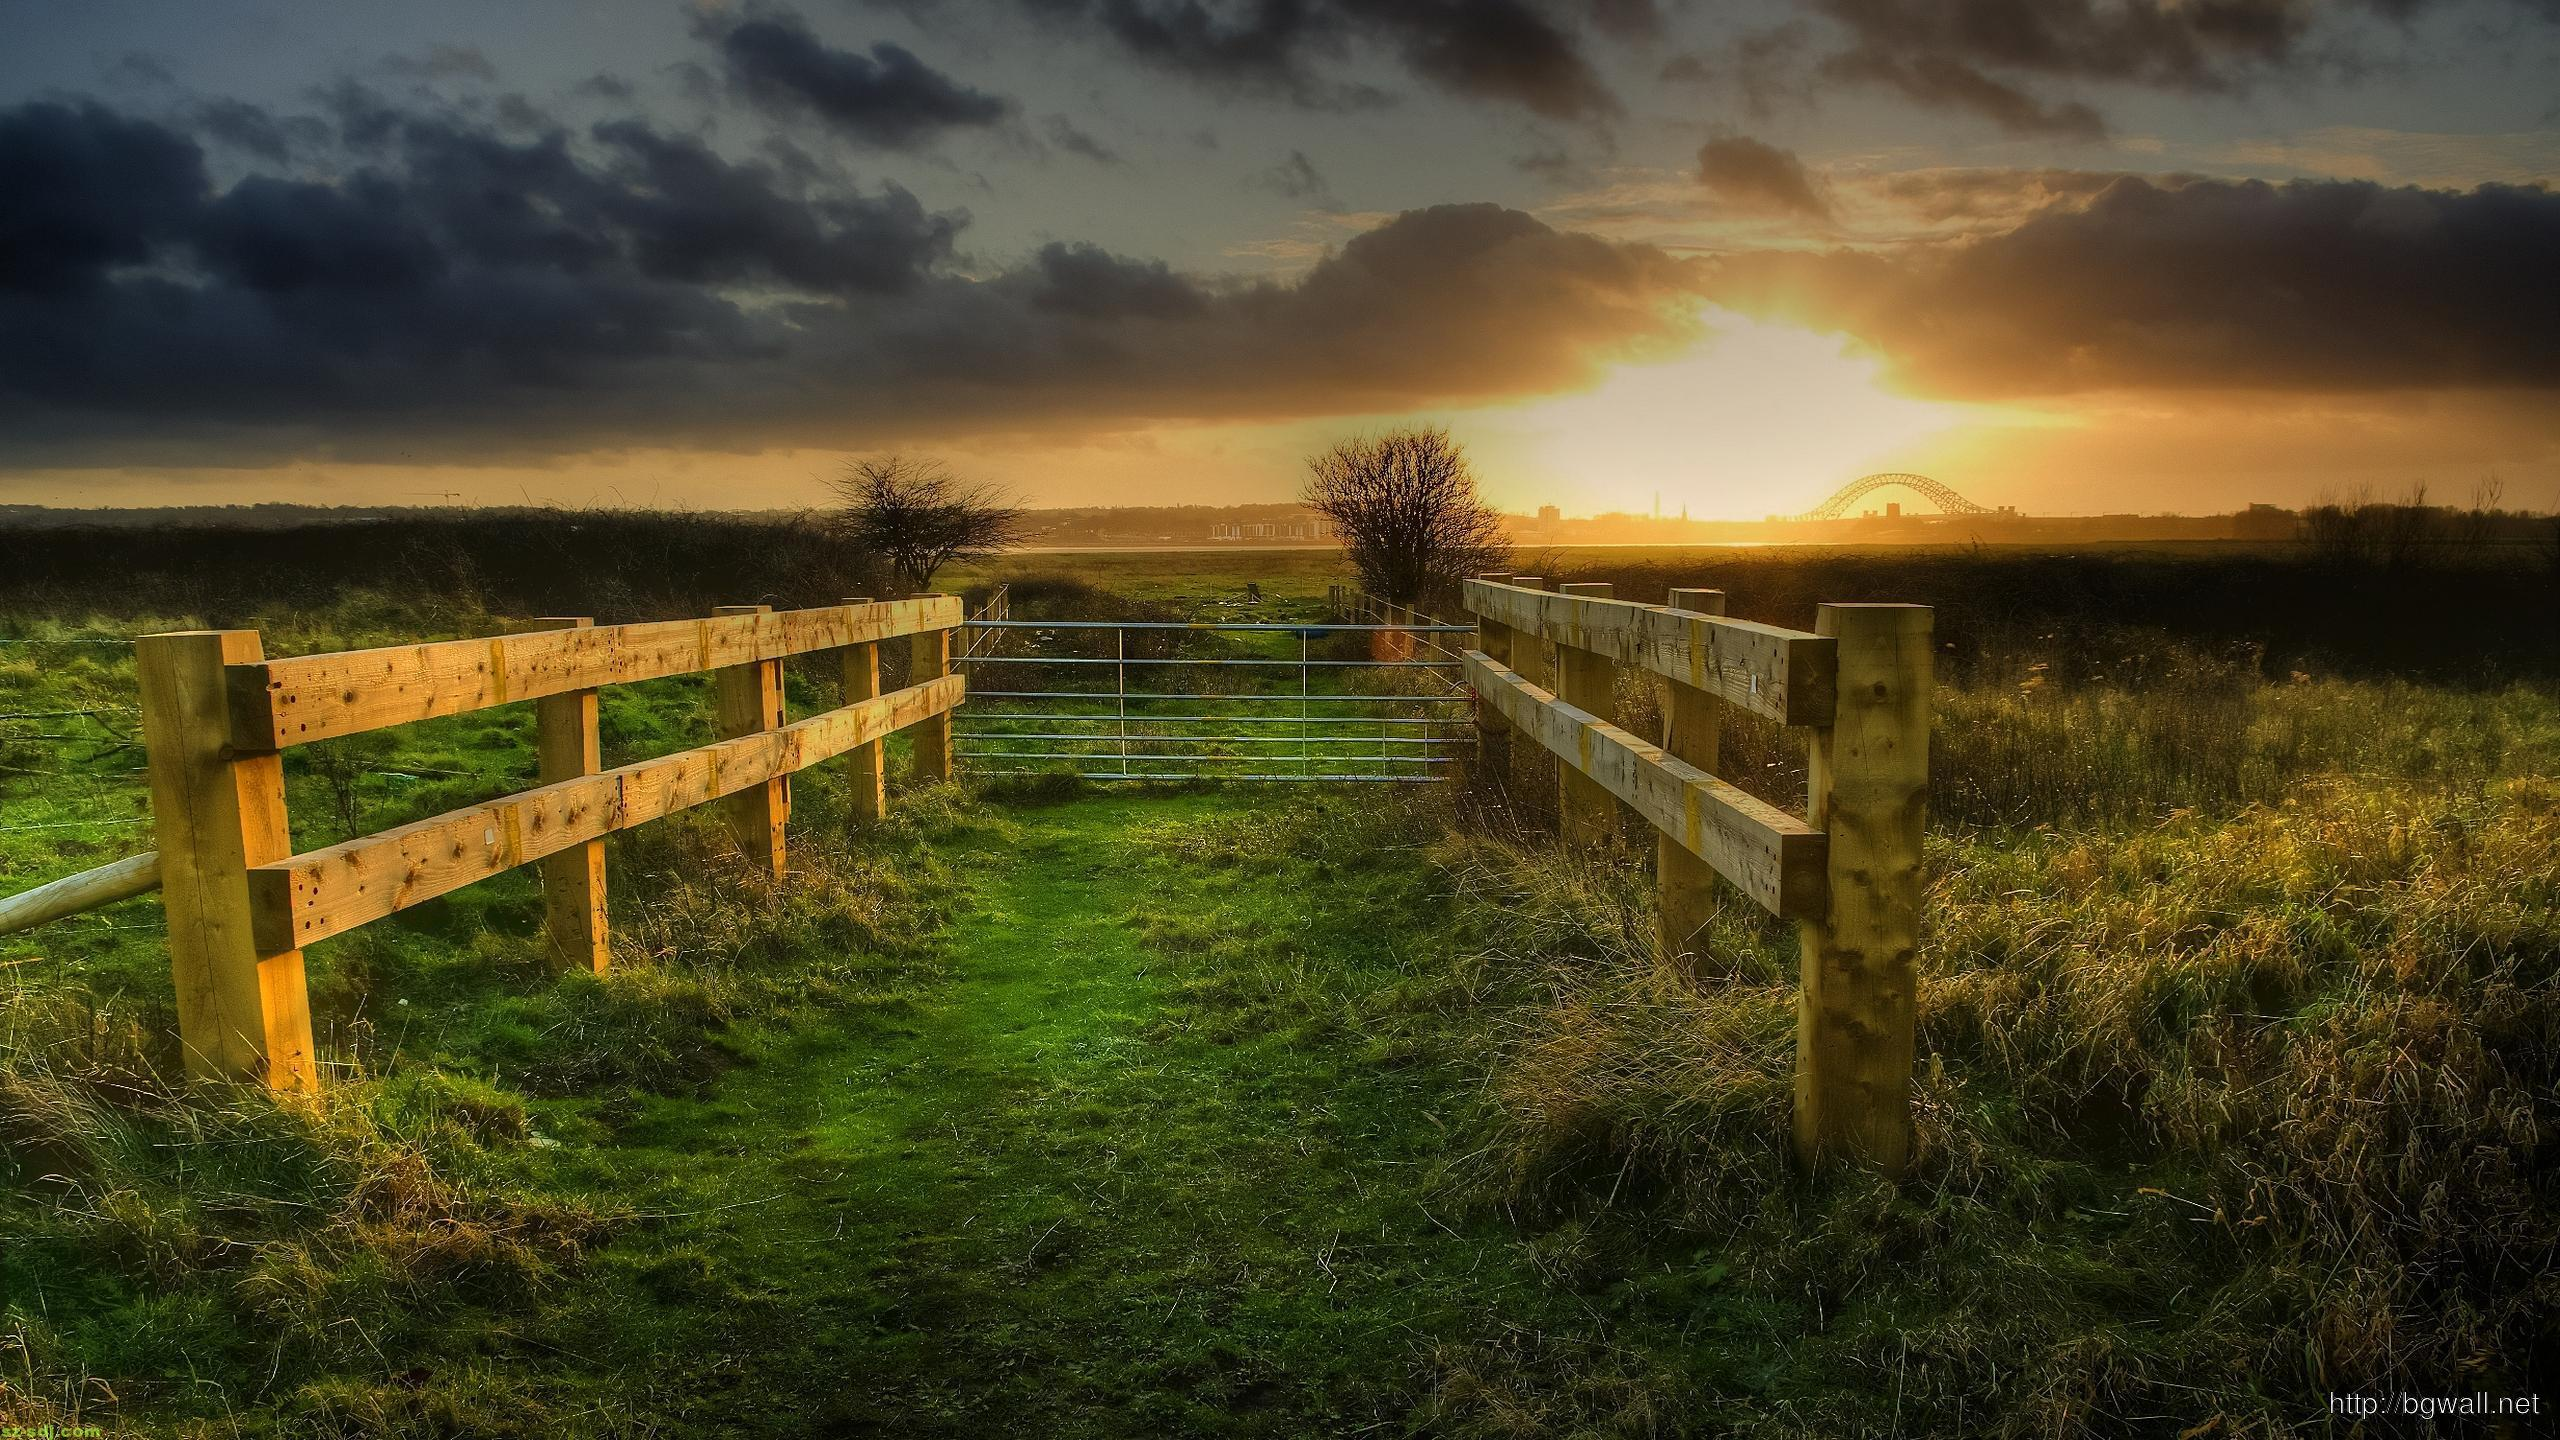 Fencing Sunset Nature Wallpaper Widescreen – Background HD